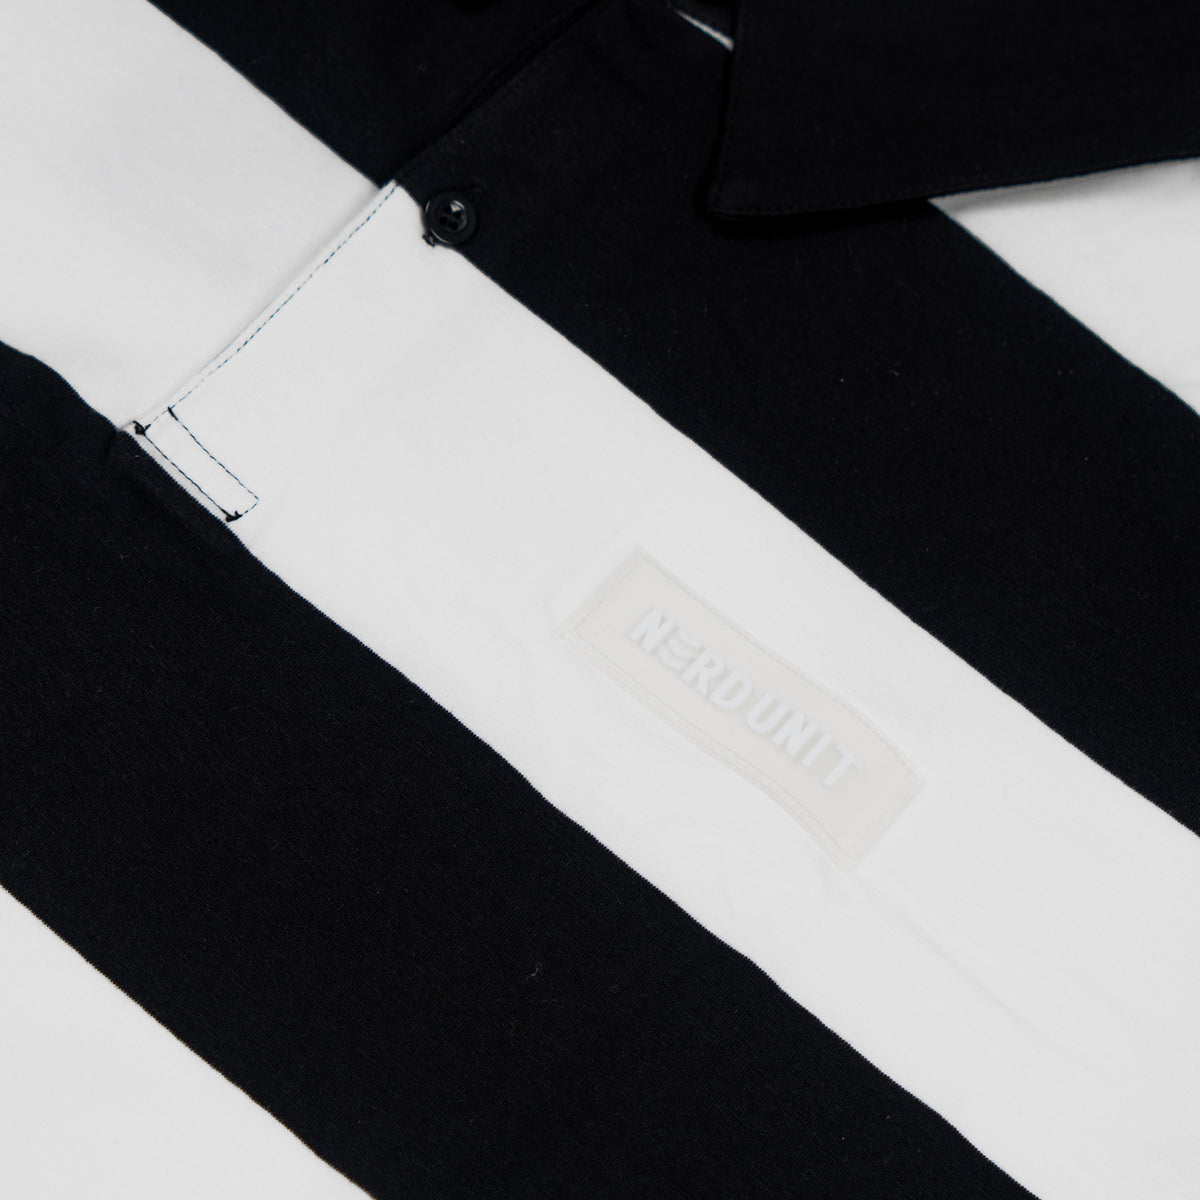 SS18 STRIPE LONG SLEEVES POLO TEE (SS18 ストライプ ロングスリーブ ポロ Tシャツ)